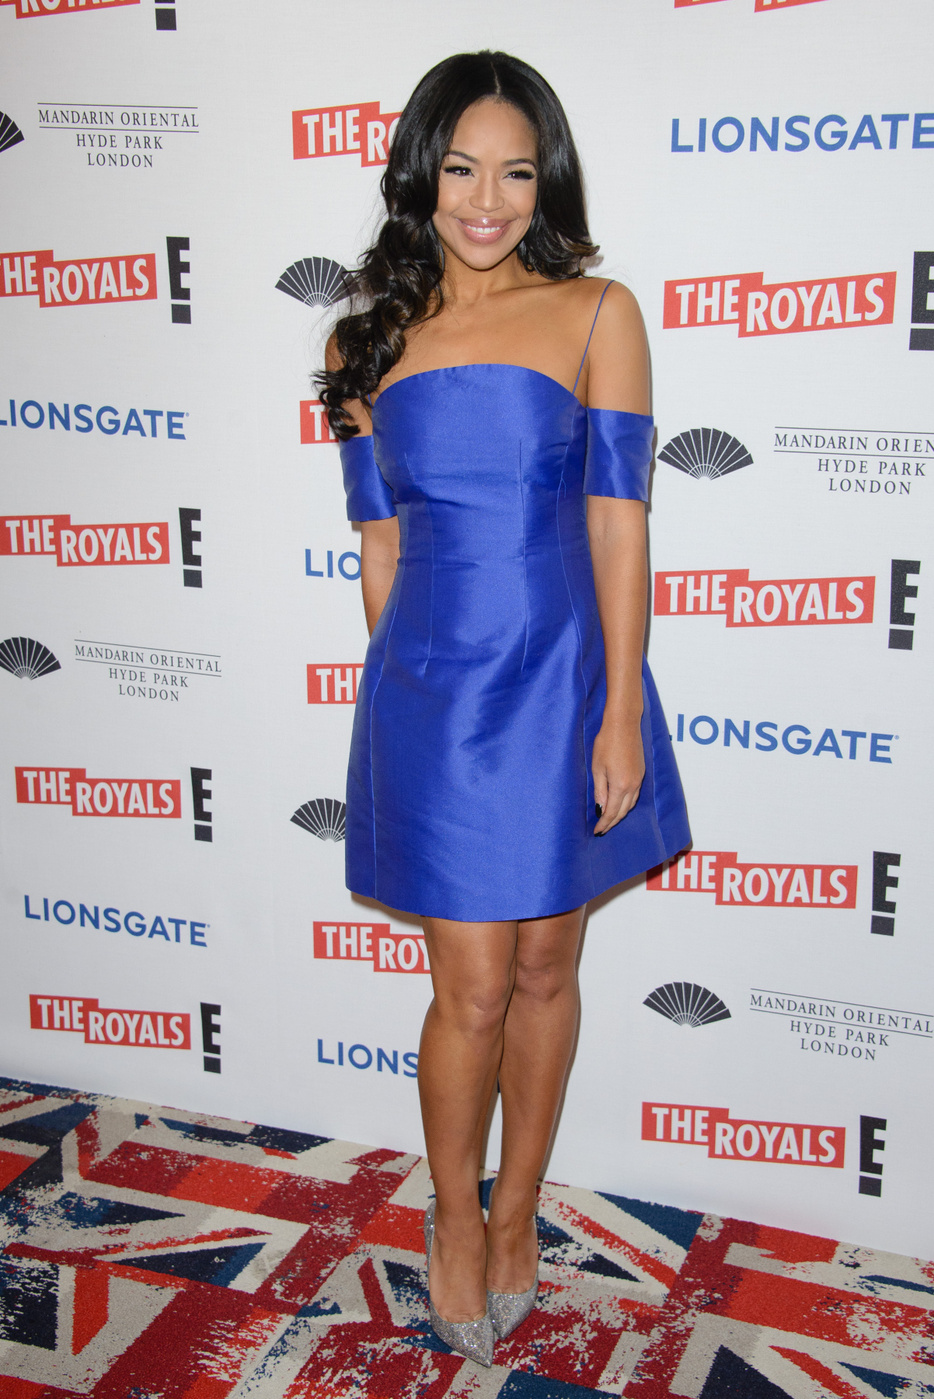 134680, Sarah Jane Crawford attends the UK TV Premiere of 'The Royals' at Mandarin Oriental Hotel. London, United Kingdom - Tuesday March 24, 2015. UK, FRANCE, AUS, NZ, CHINA, HONG KONG, TAIWAN, SPAIN & ITALY OUT Photograph: © i-Images, PacificCoastNews. Los Angeles Office: +1 310.822.0419 sales@pacificcoastnews.com FEE MUST BE AGREED PRIOR TO USAGE